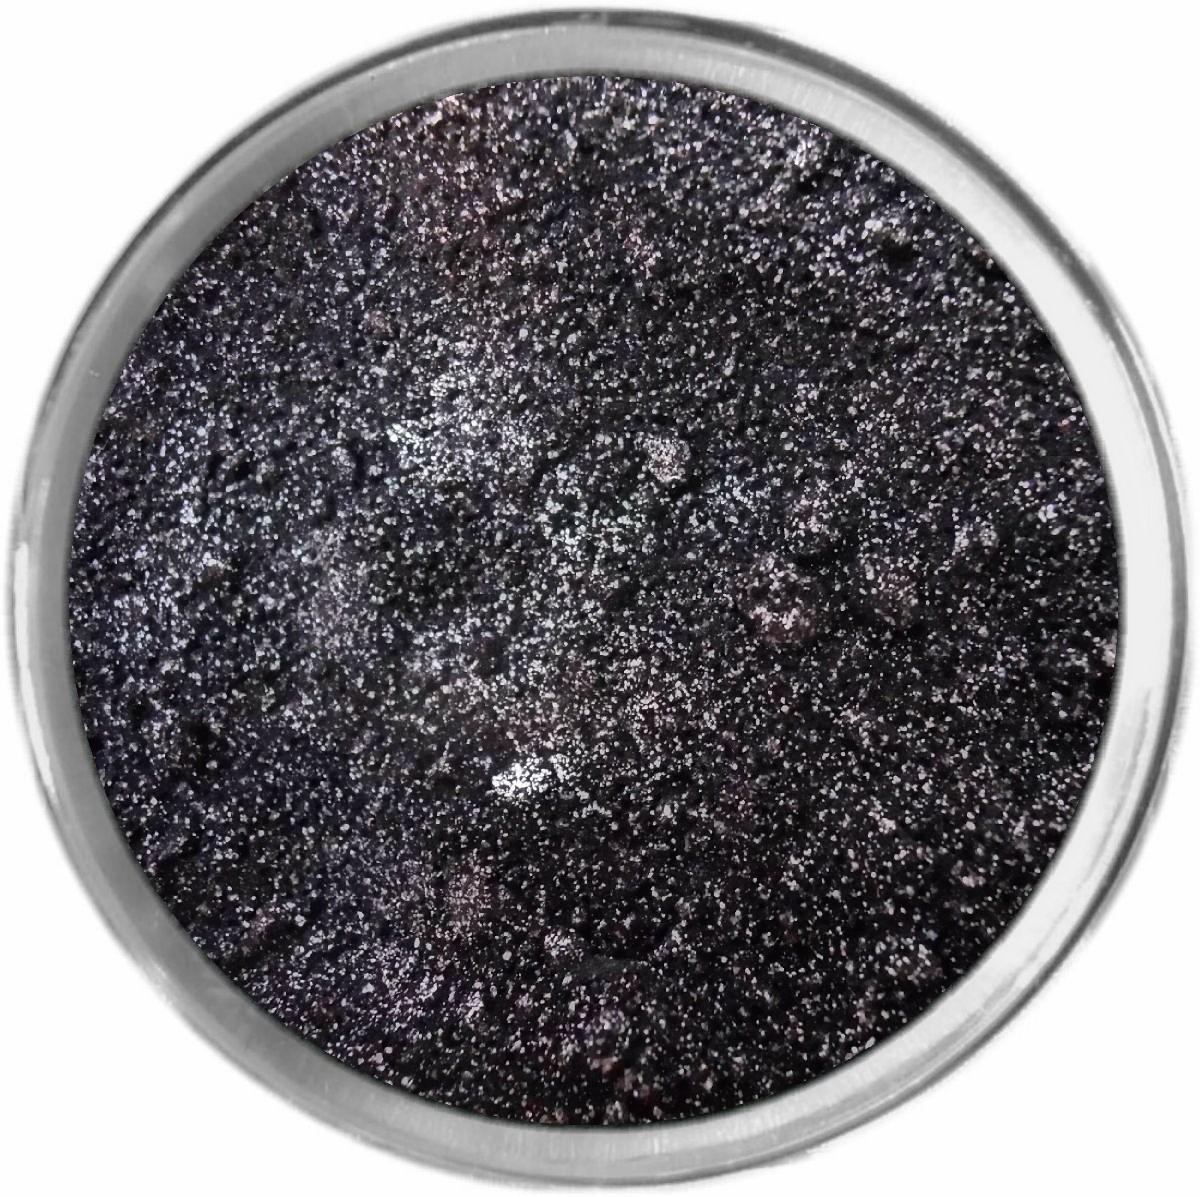 ea6ede83c49 BLACK ICE loose powder mineral multi-use color makeup bare earth pigment  minerals by M A D Minerals - Musely